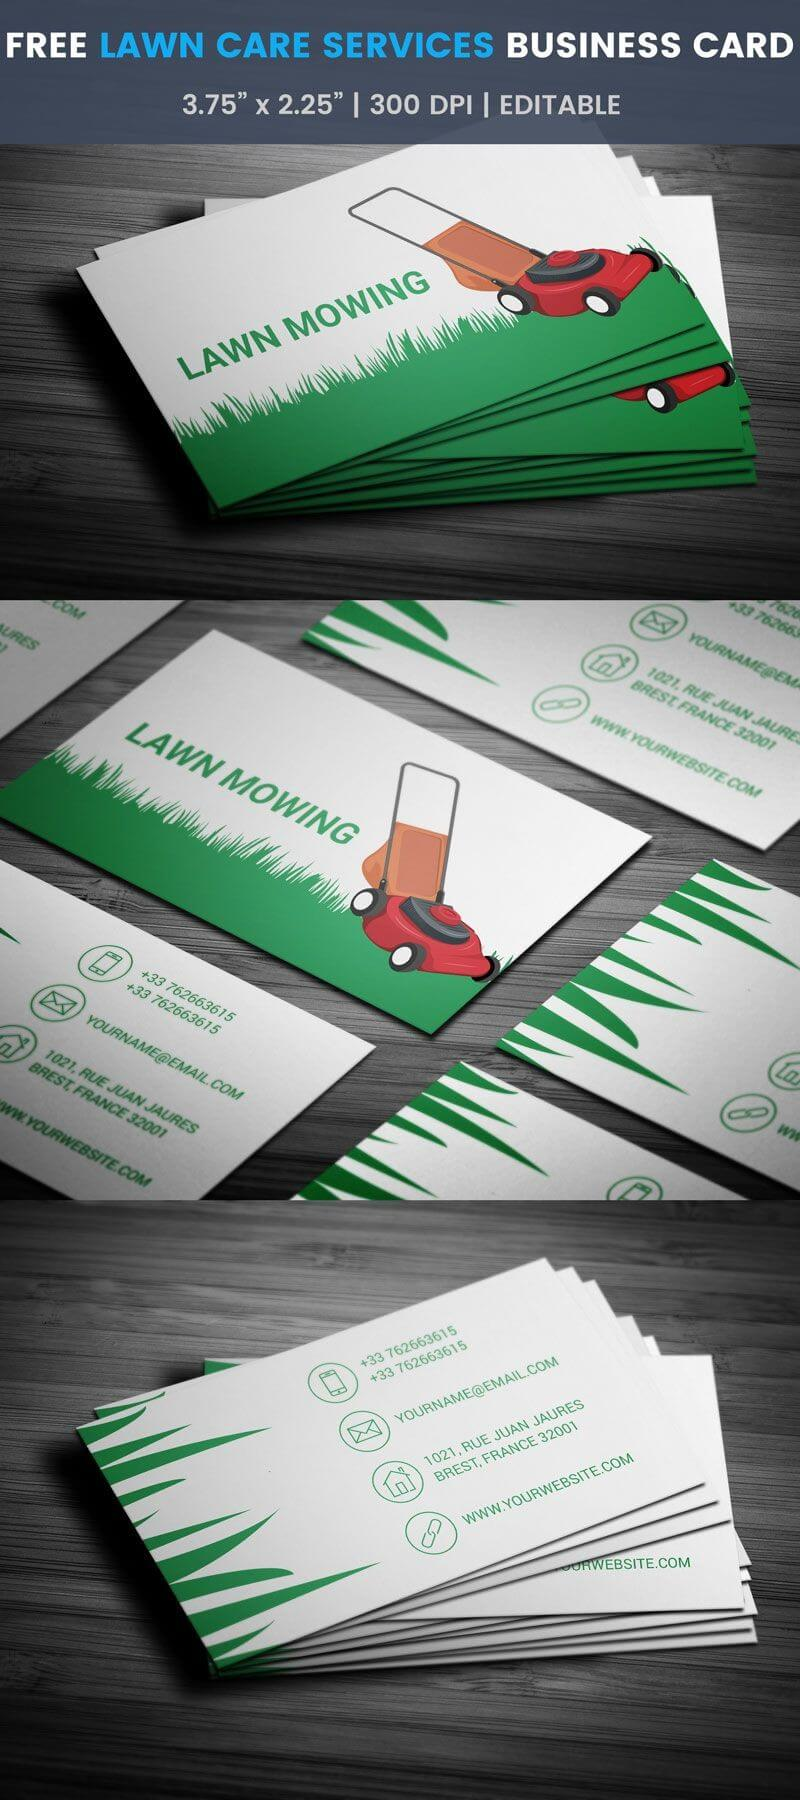 Lawn Care Services Business Card - Full Preview | Free Throughout Lawn Care Business Cards Templates Free